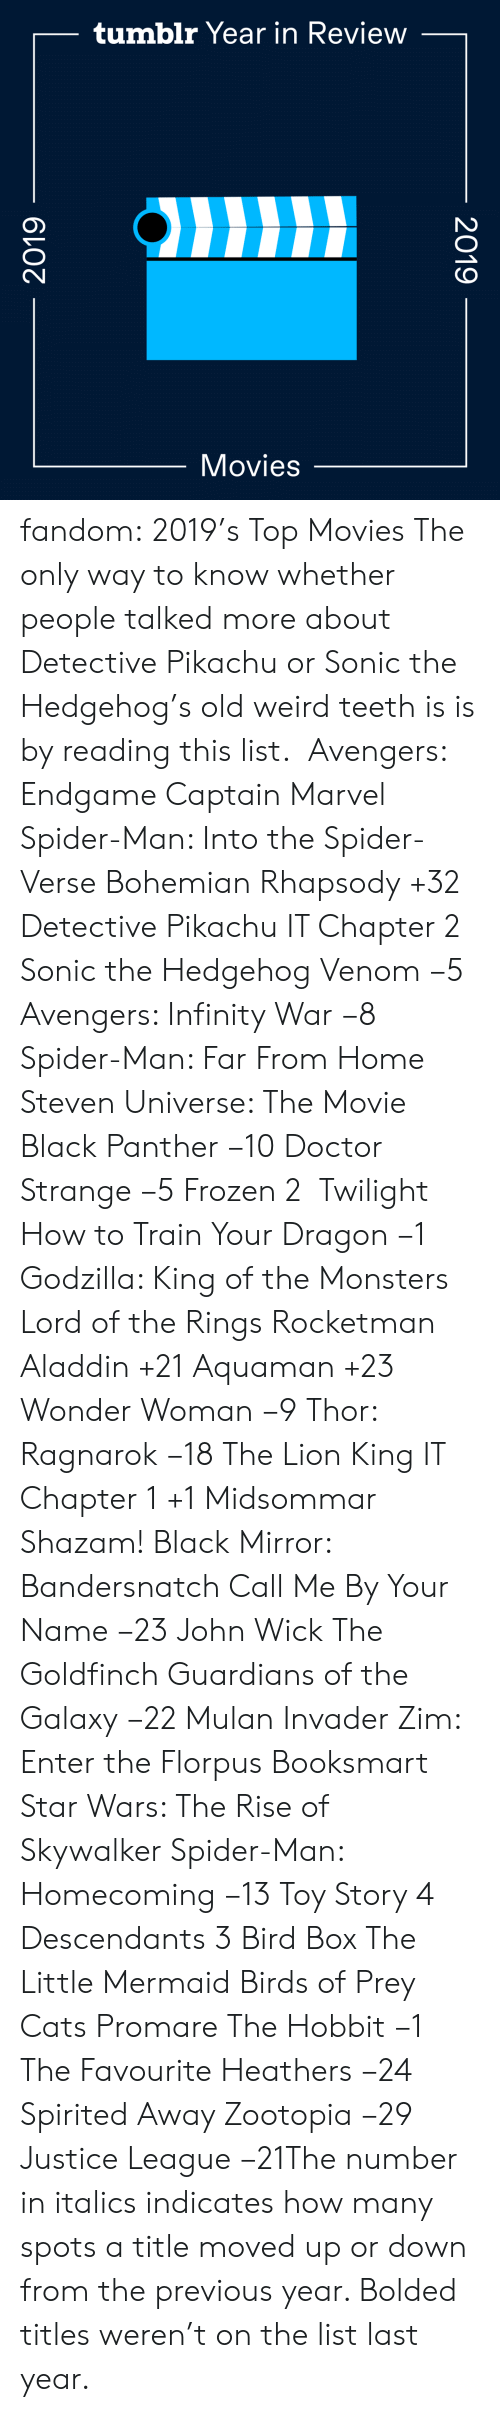 Infinity War: tumblr Year in Review  Movies  2019  2019 fandom:  2019's Top Movies  The only way to know whether people talked more about Detective Pikachu or Sonic the Hedgehog's old weird teeth is is by reading this list.   Avengers: Endgame  Captain Marvel  Spider-Man: Into the Spider-Verse  Bohemian Rhapsody +32  Detective Pikachu  IT Chapter 2  Sonic the Hedgehog  Venom −5  Avengers: Infinity War −8  Spider-Man: Far From Home  Steven Universe: The Movie  Black Panther −10  Doctor Strange −5  Frozen 2   Twilight  How to Train Your Dragon −1  Godzilla: King of the Monsters  Lord of the Rings  Rocketman  Aladdin +21  Aquaman +23  Wonder Woman −9  Thor: Ragnarok −18  The Lion King  IT Chapter 1 +1  Midsommar  Shazam!  Black Mirror: Bandersnatch  Call Me By Your Name −23  John Wick  The Goldfinch  Guardians of the Galaxy −22  Mulan  Invader Zim: Enter the Florpus  Booksmart  Star Wars: The Rise of Skywalker  Spider-Man: Homecoming −13  Toy Story 4  Descendants 3  Bird Box  The Little Mermaid  Birds of Prey  Cats  Promare  The Hobbit −1  The Favourite  Heathers −24  Spirited Away  Zootopia −29 Justice League −21The number in italics indicates how many spots a title moved up or down from the previous year. Bolded titles weren't on the list last year.